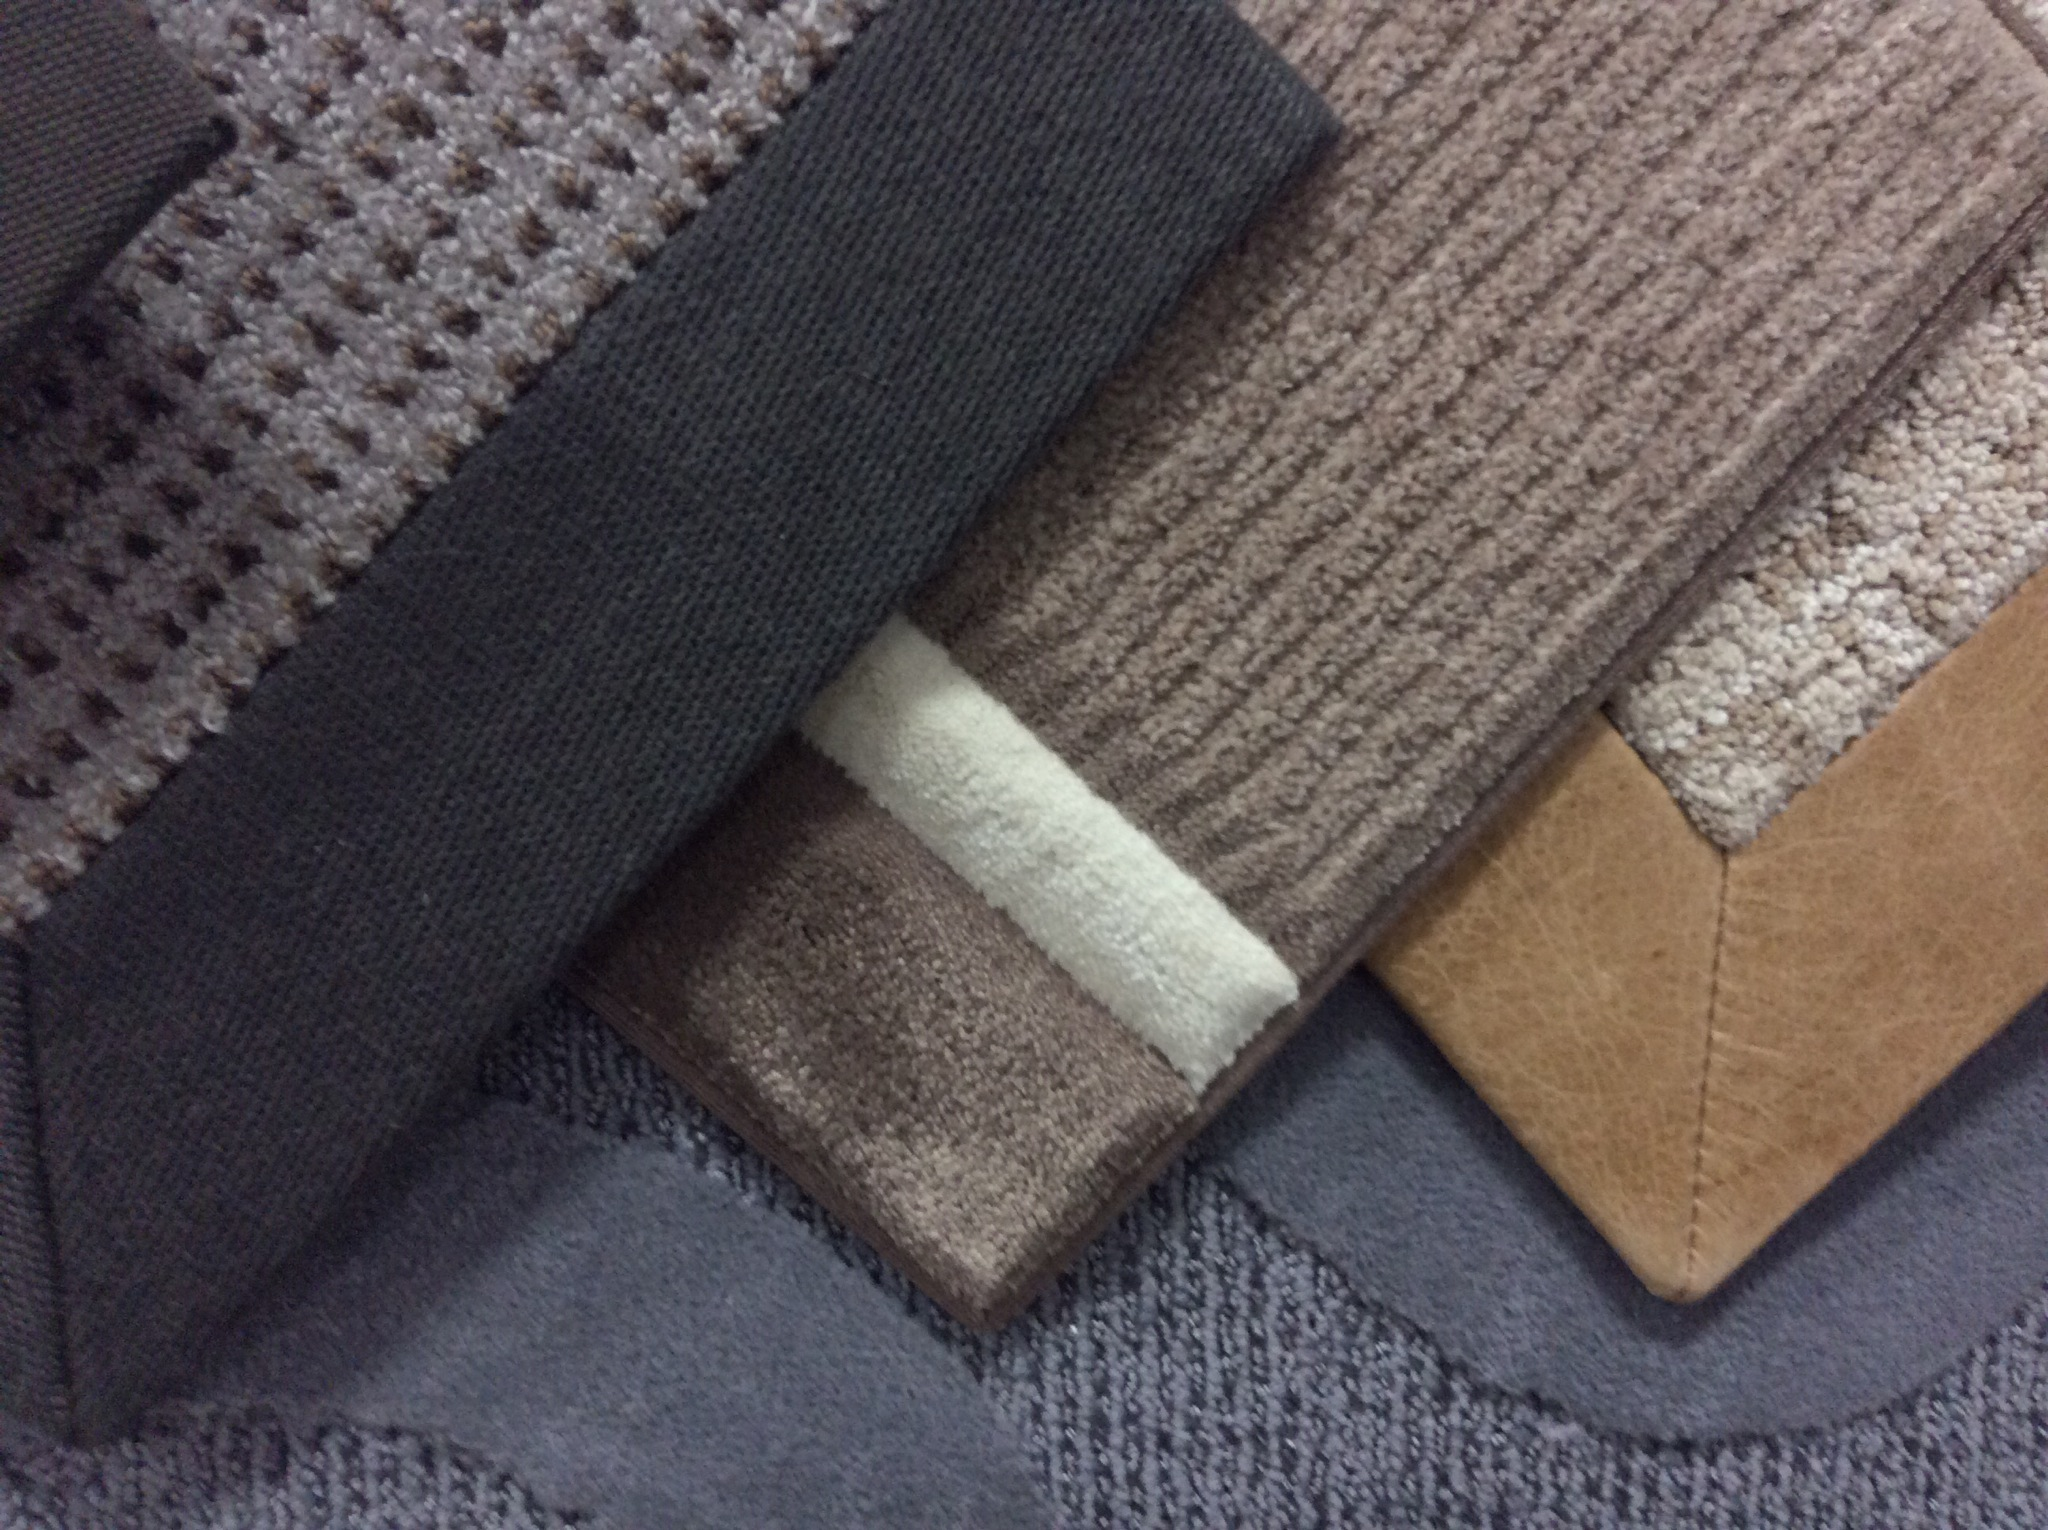 The Dixie Group with Fabrica Fine masland carpet